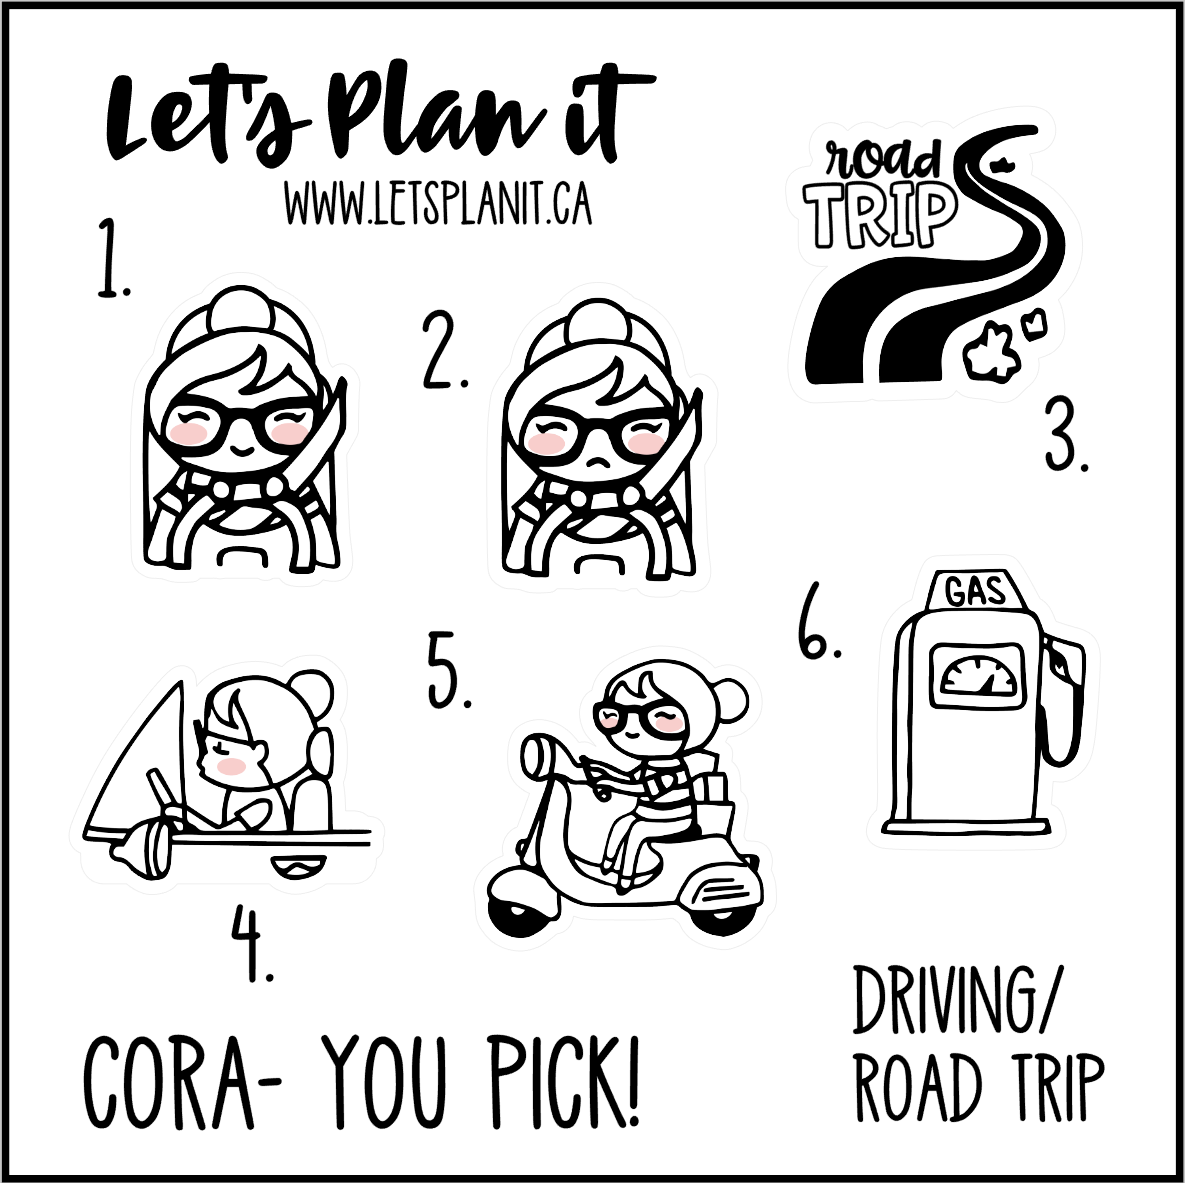 Cora-u-pick- Road Trip/ Driving